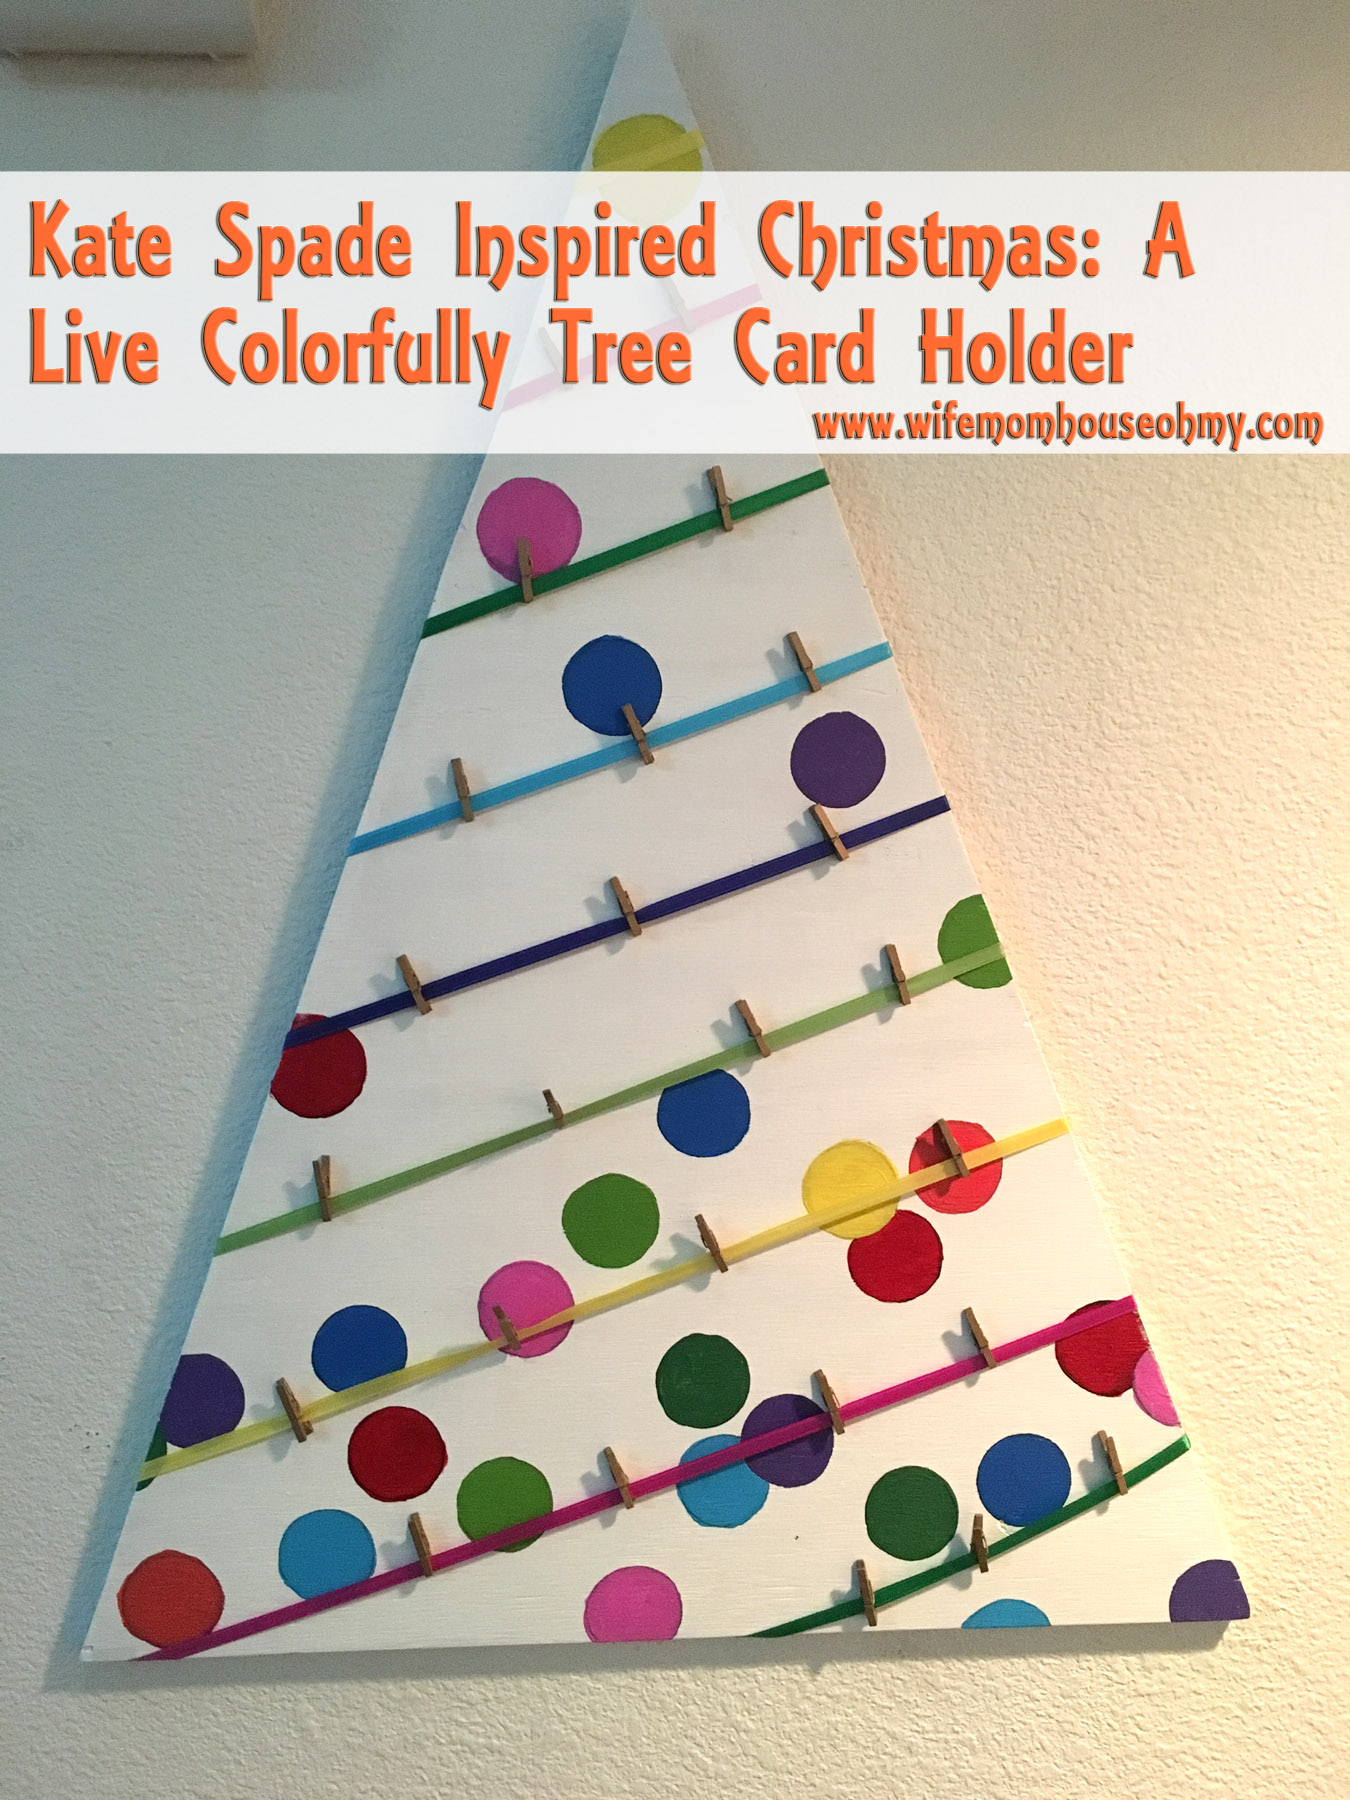 Kate Spade Inspired Christmas: A Live Colorfully Tree Card Holder |